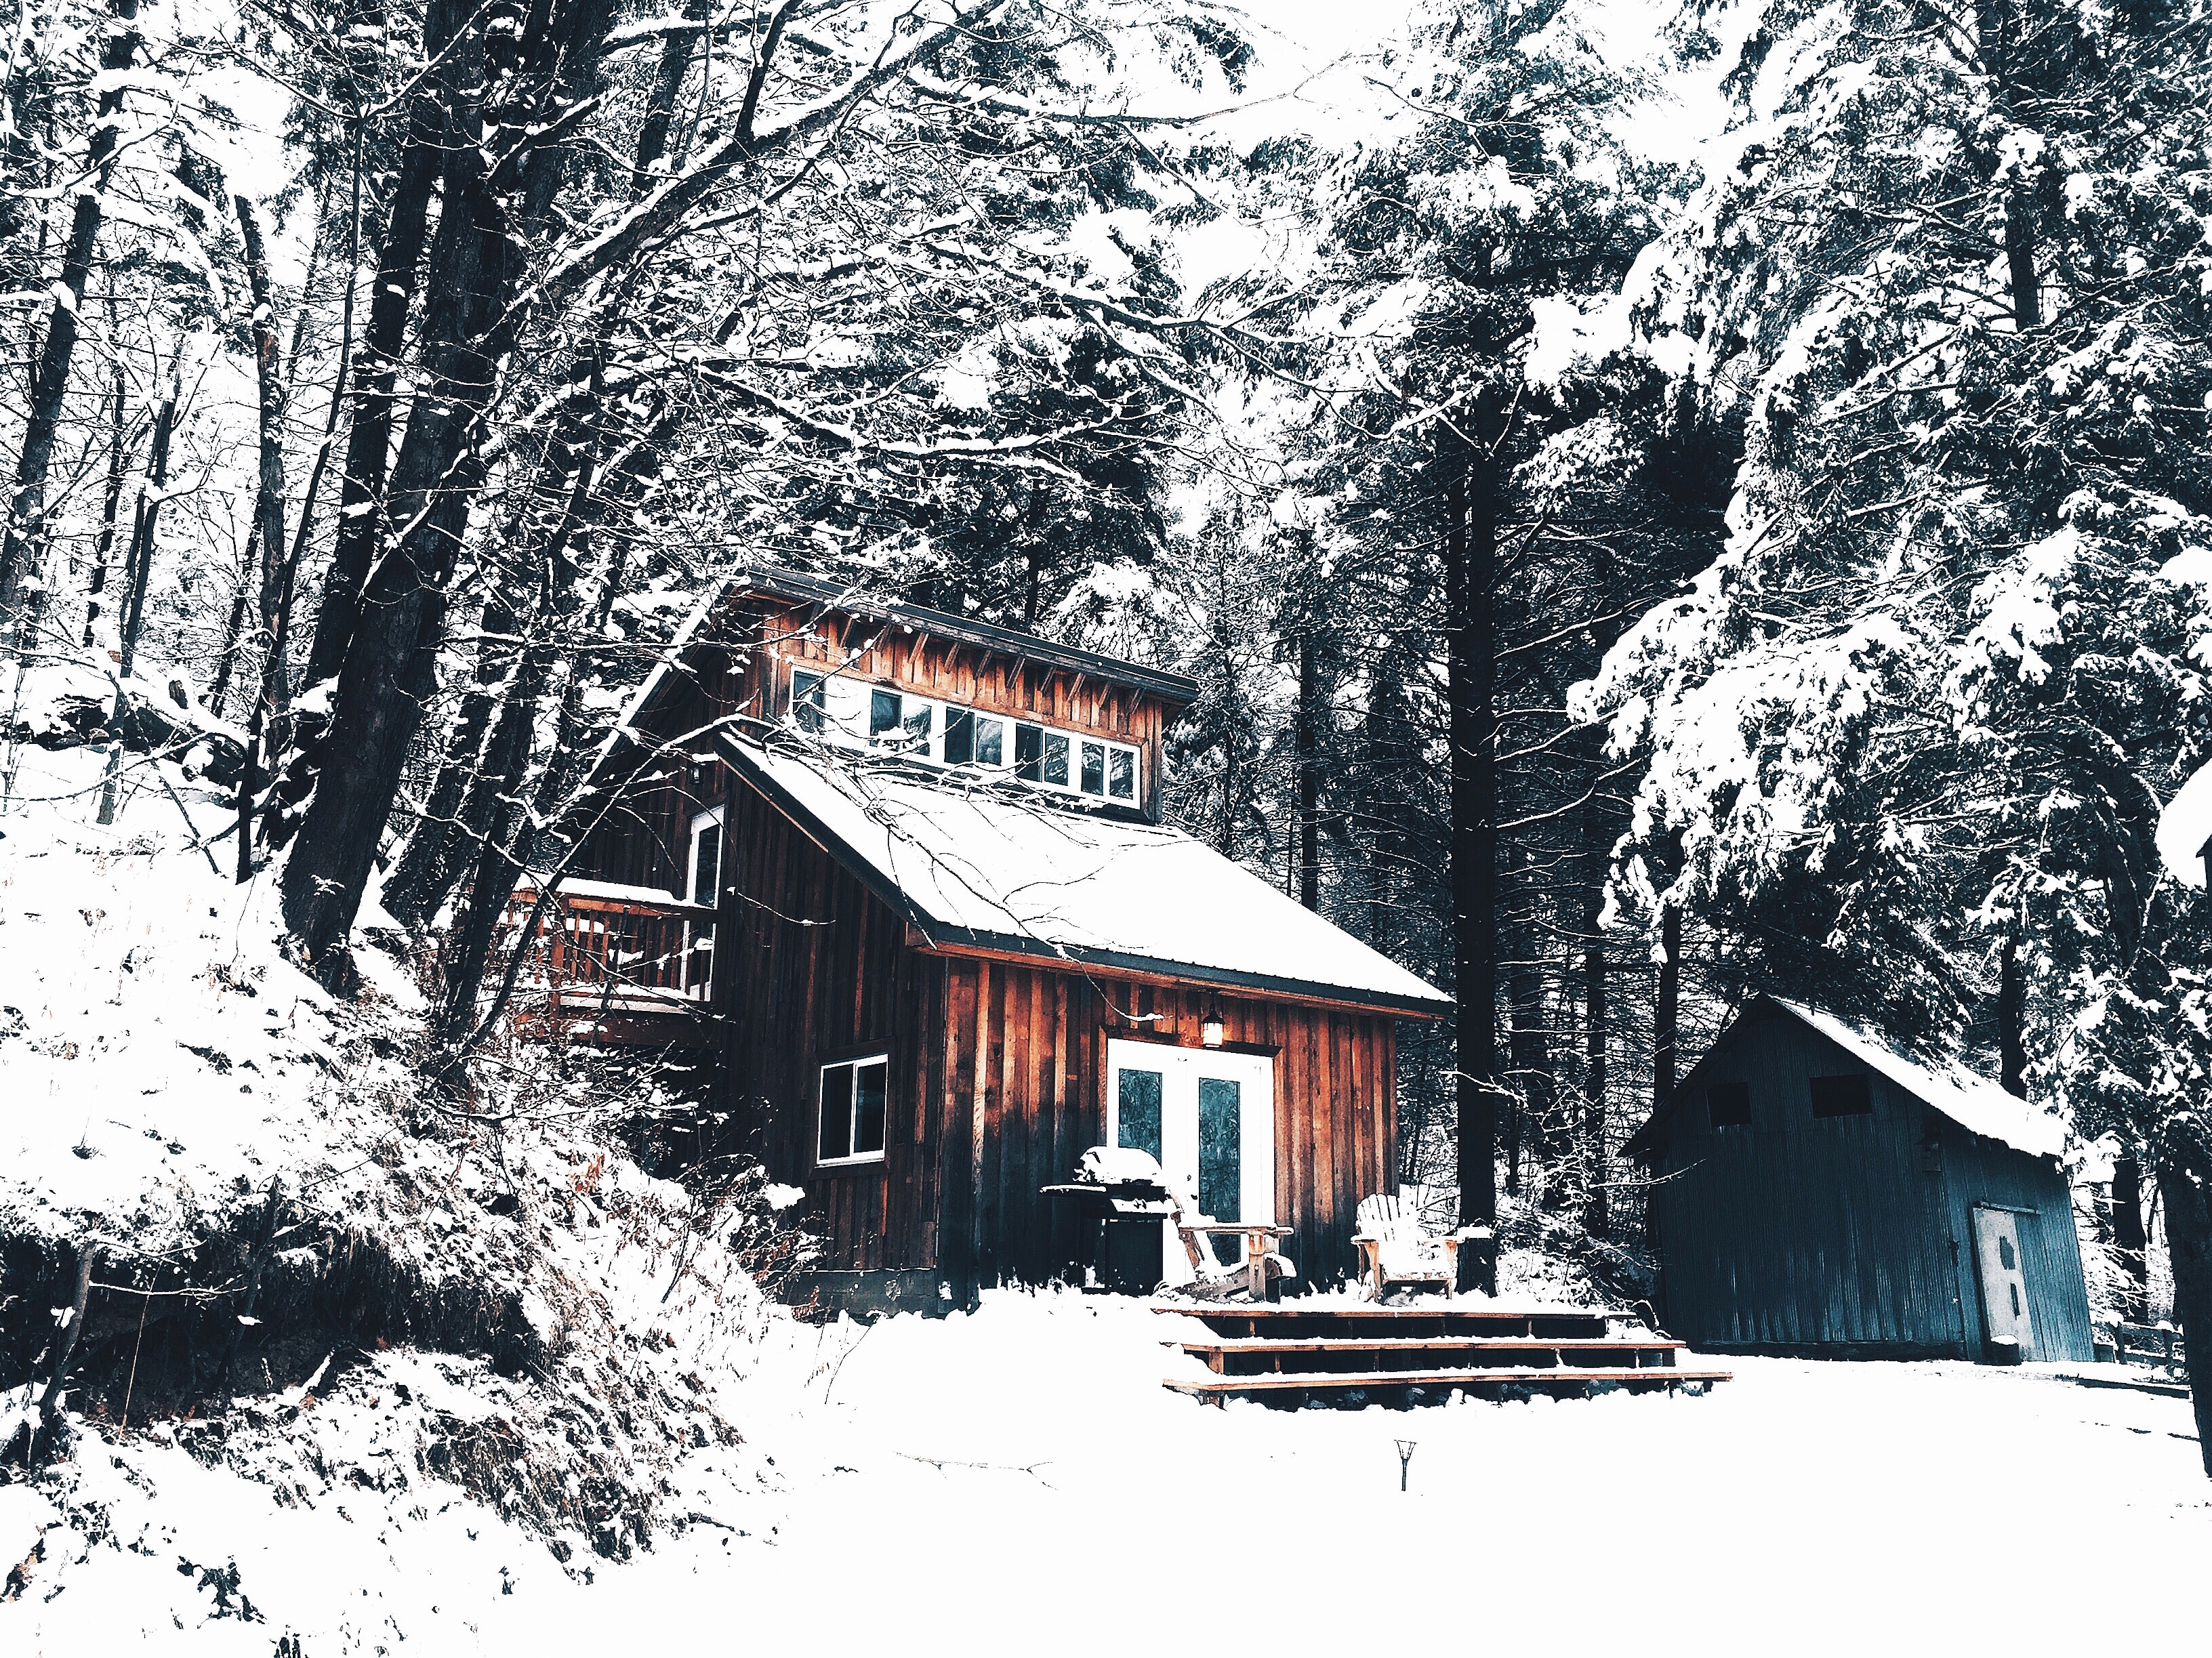 A wood cabin in a snowy winter forest